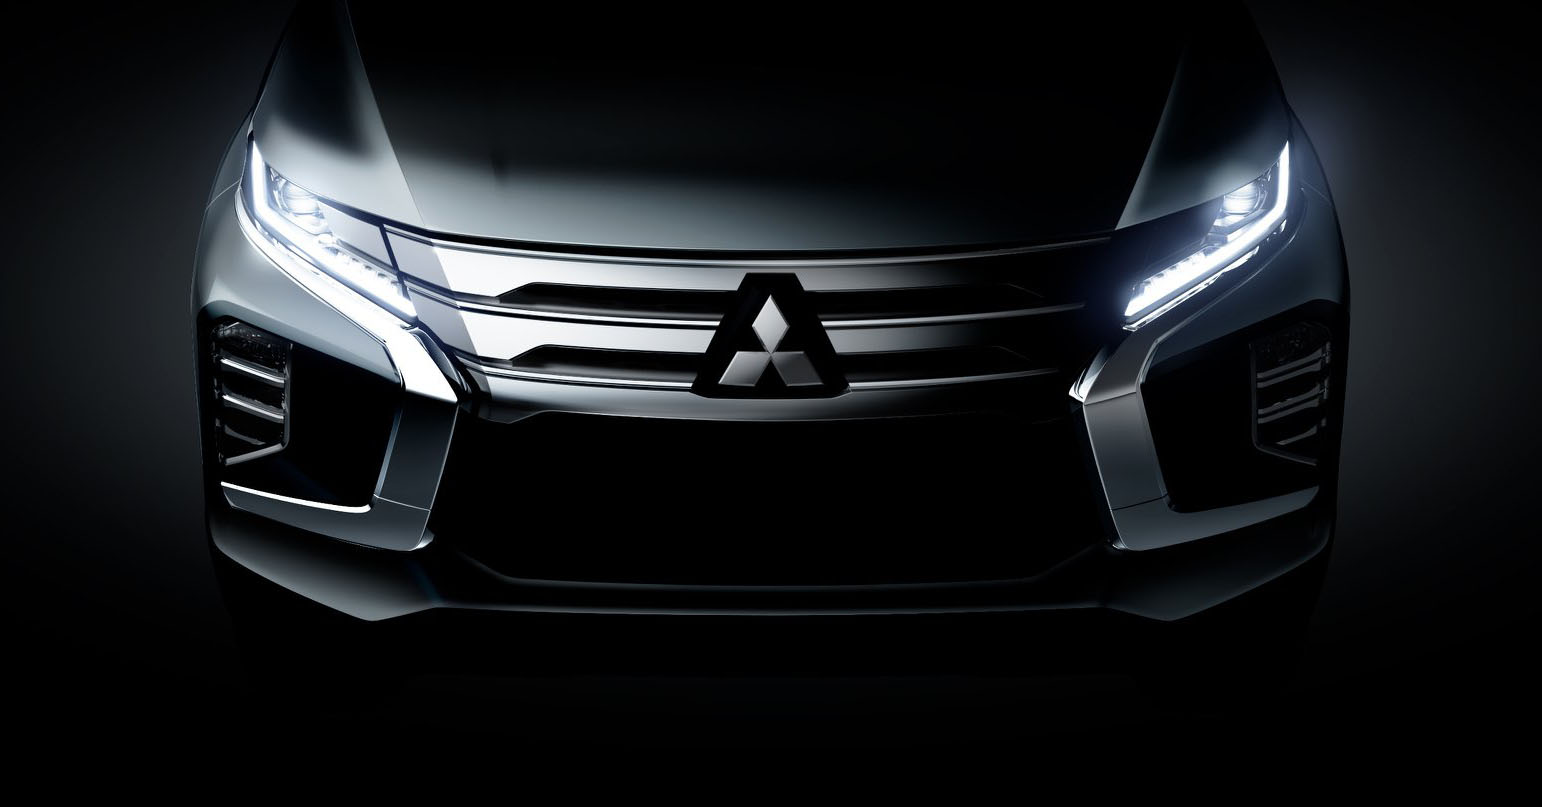 http://www.mitsubishi-trungthuong.com.vn/mitsubishi-pajero-sport/mitsubishi-pajero-sport-2020/